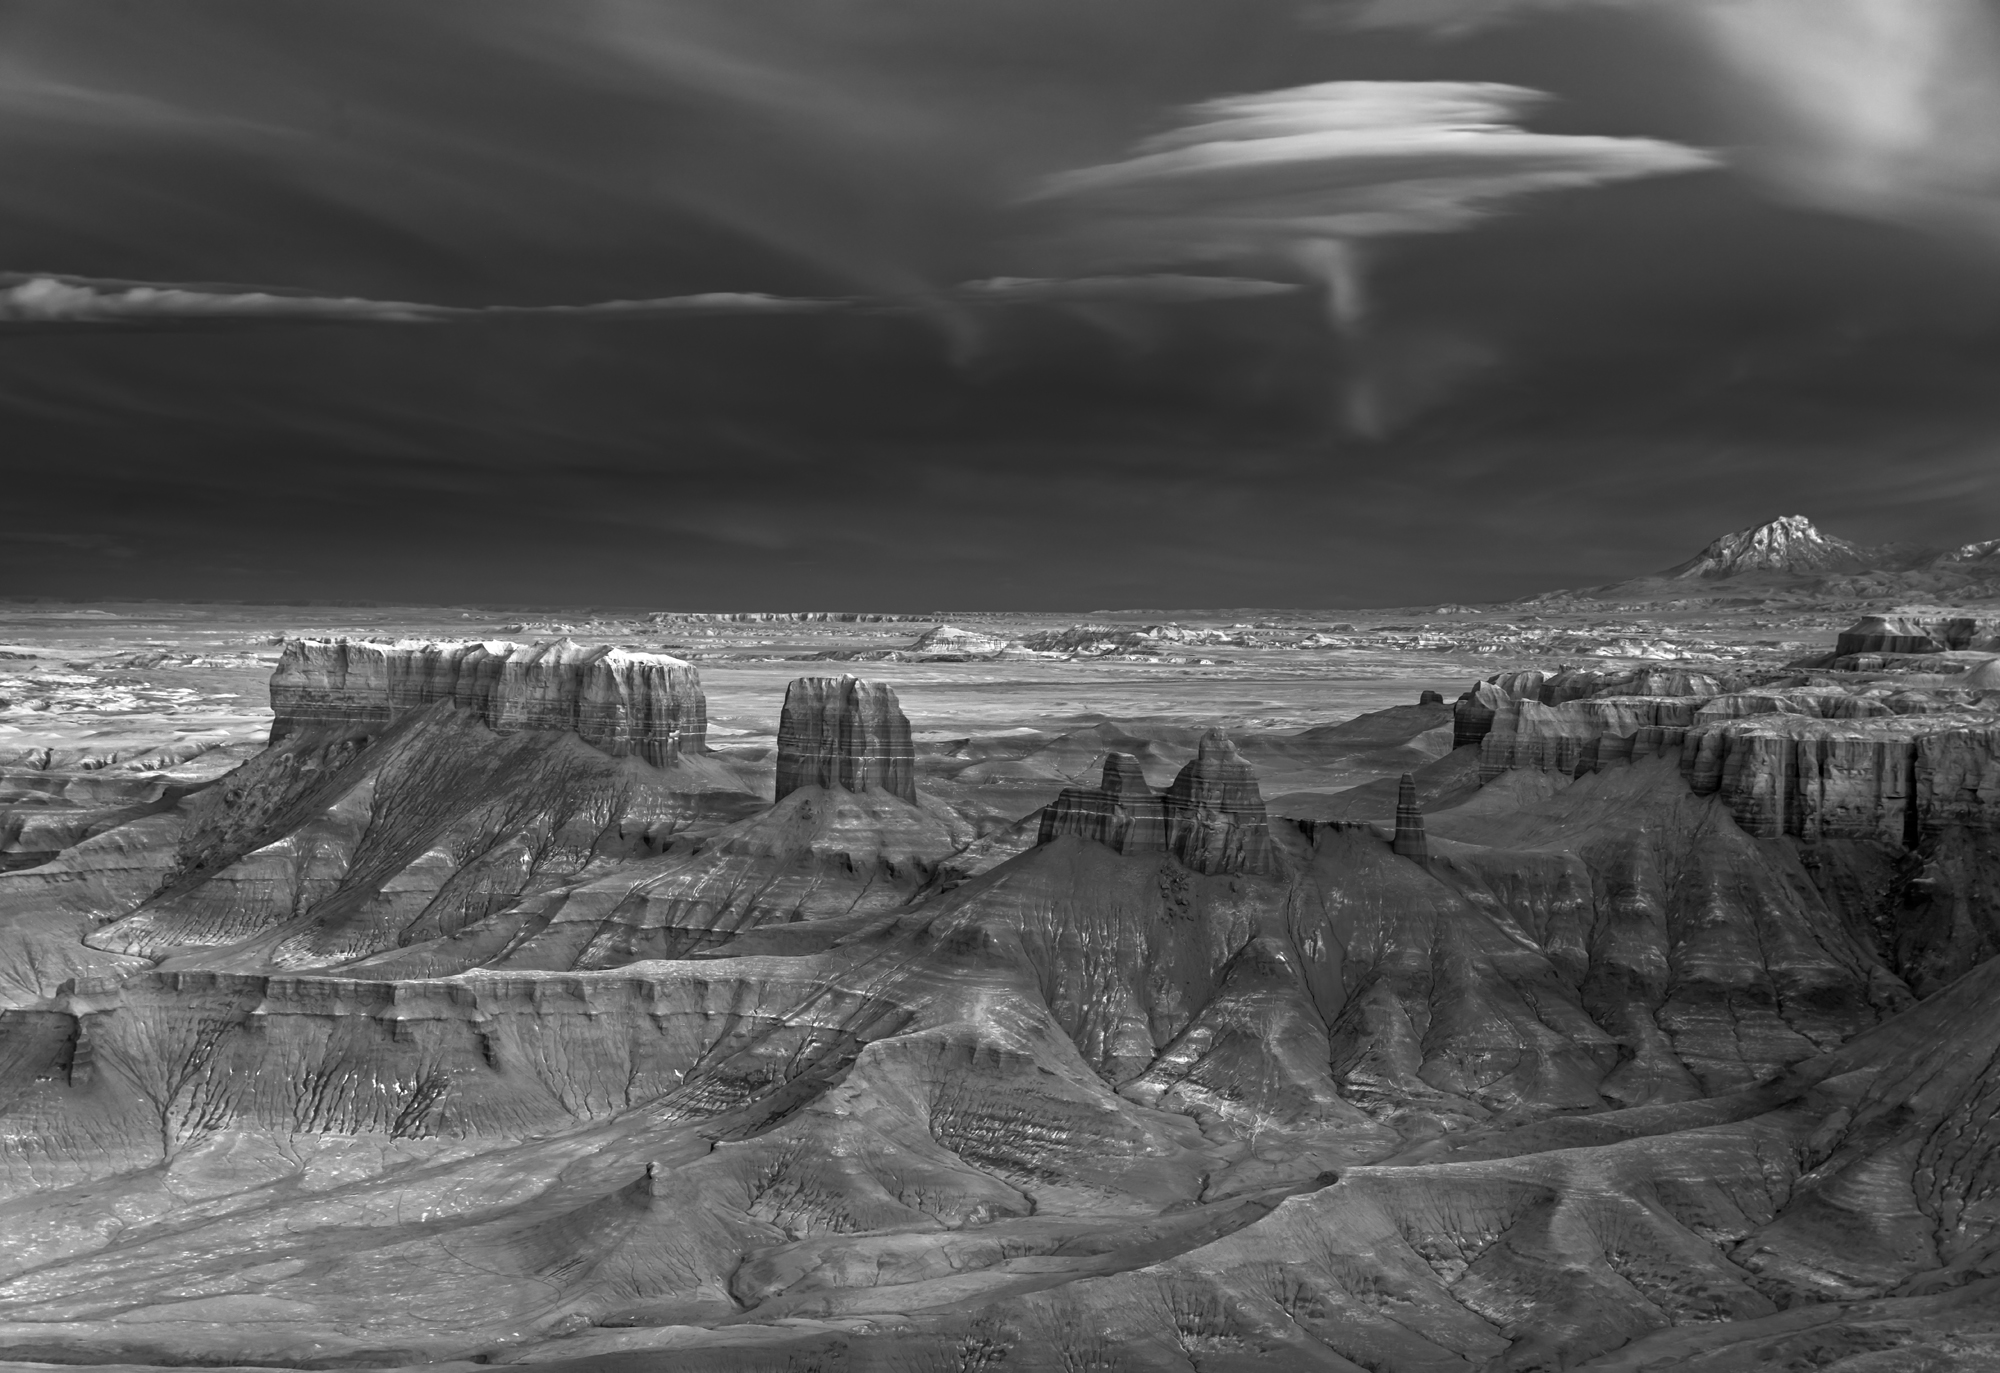 Mitch Dobrowner, Nacreous over Badlands, Catherine Couturier Gallery